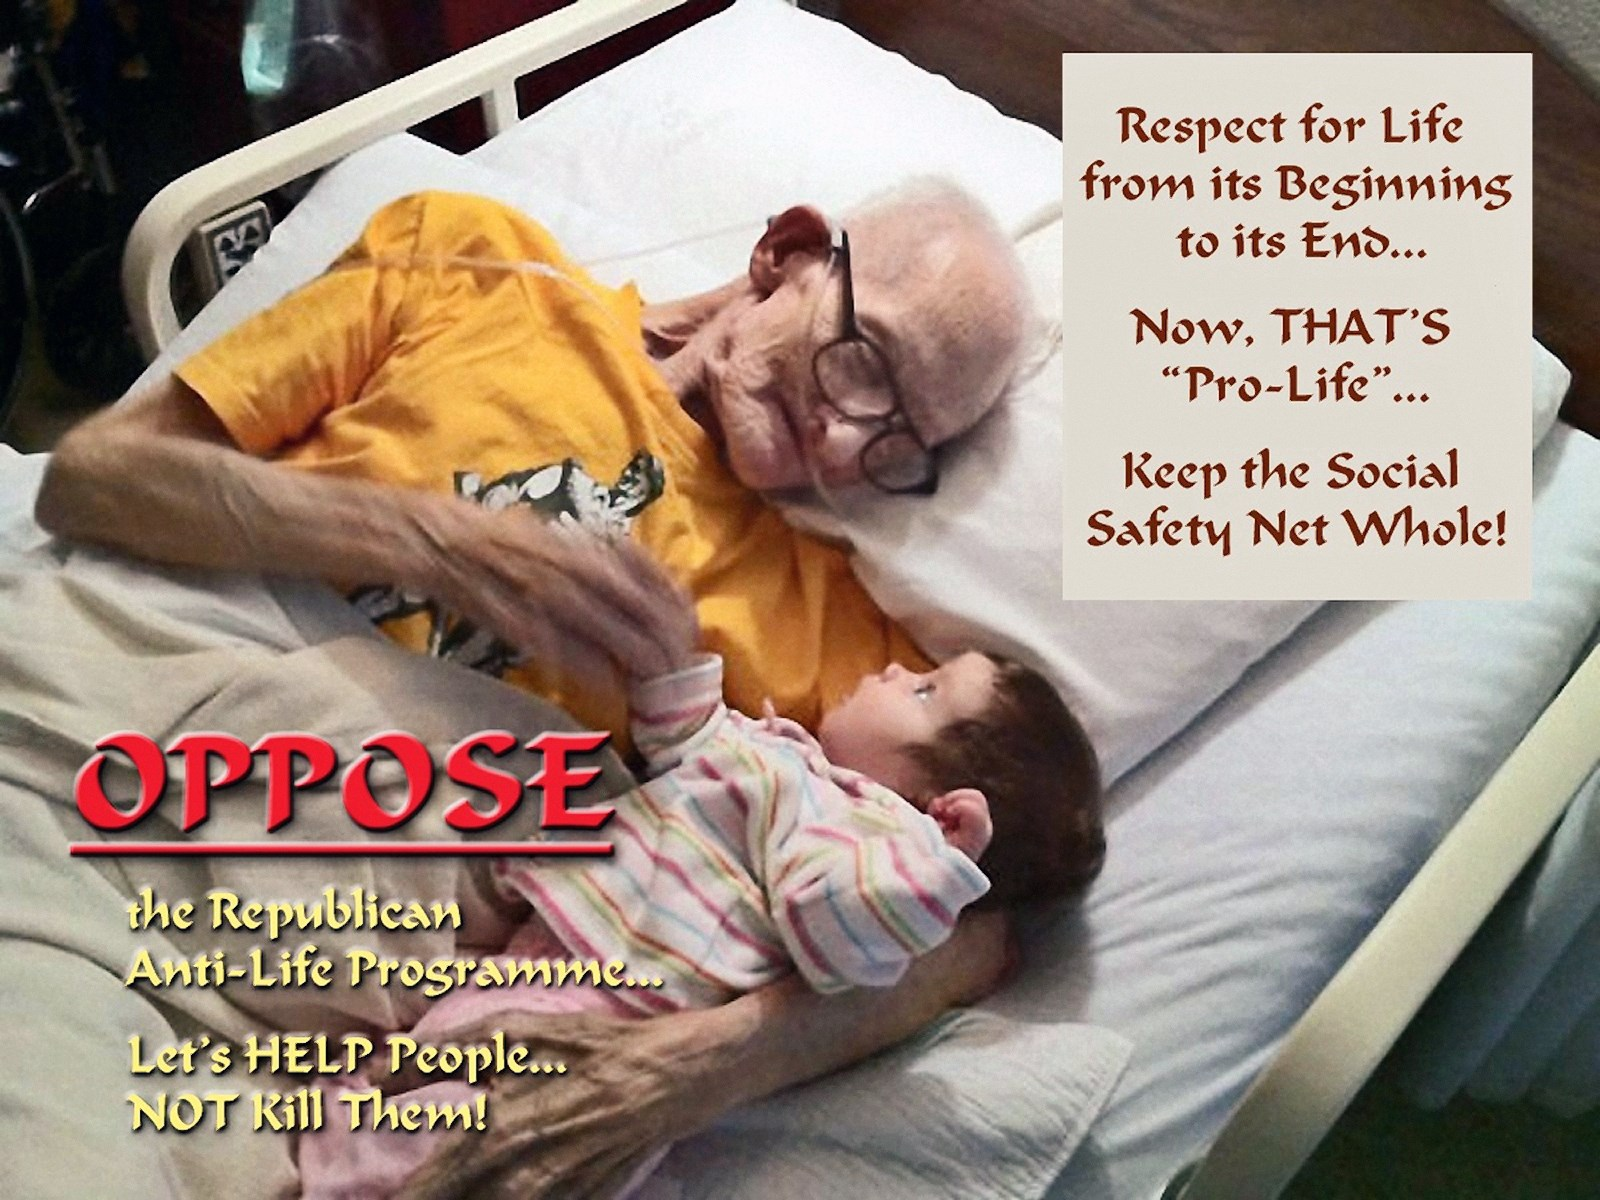 00 oppose the republican anti-life programme 02. 170615